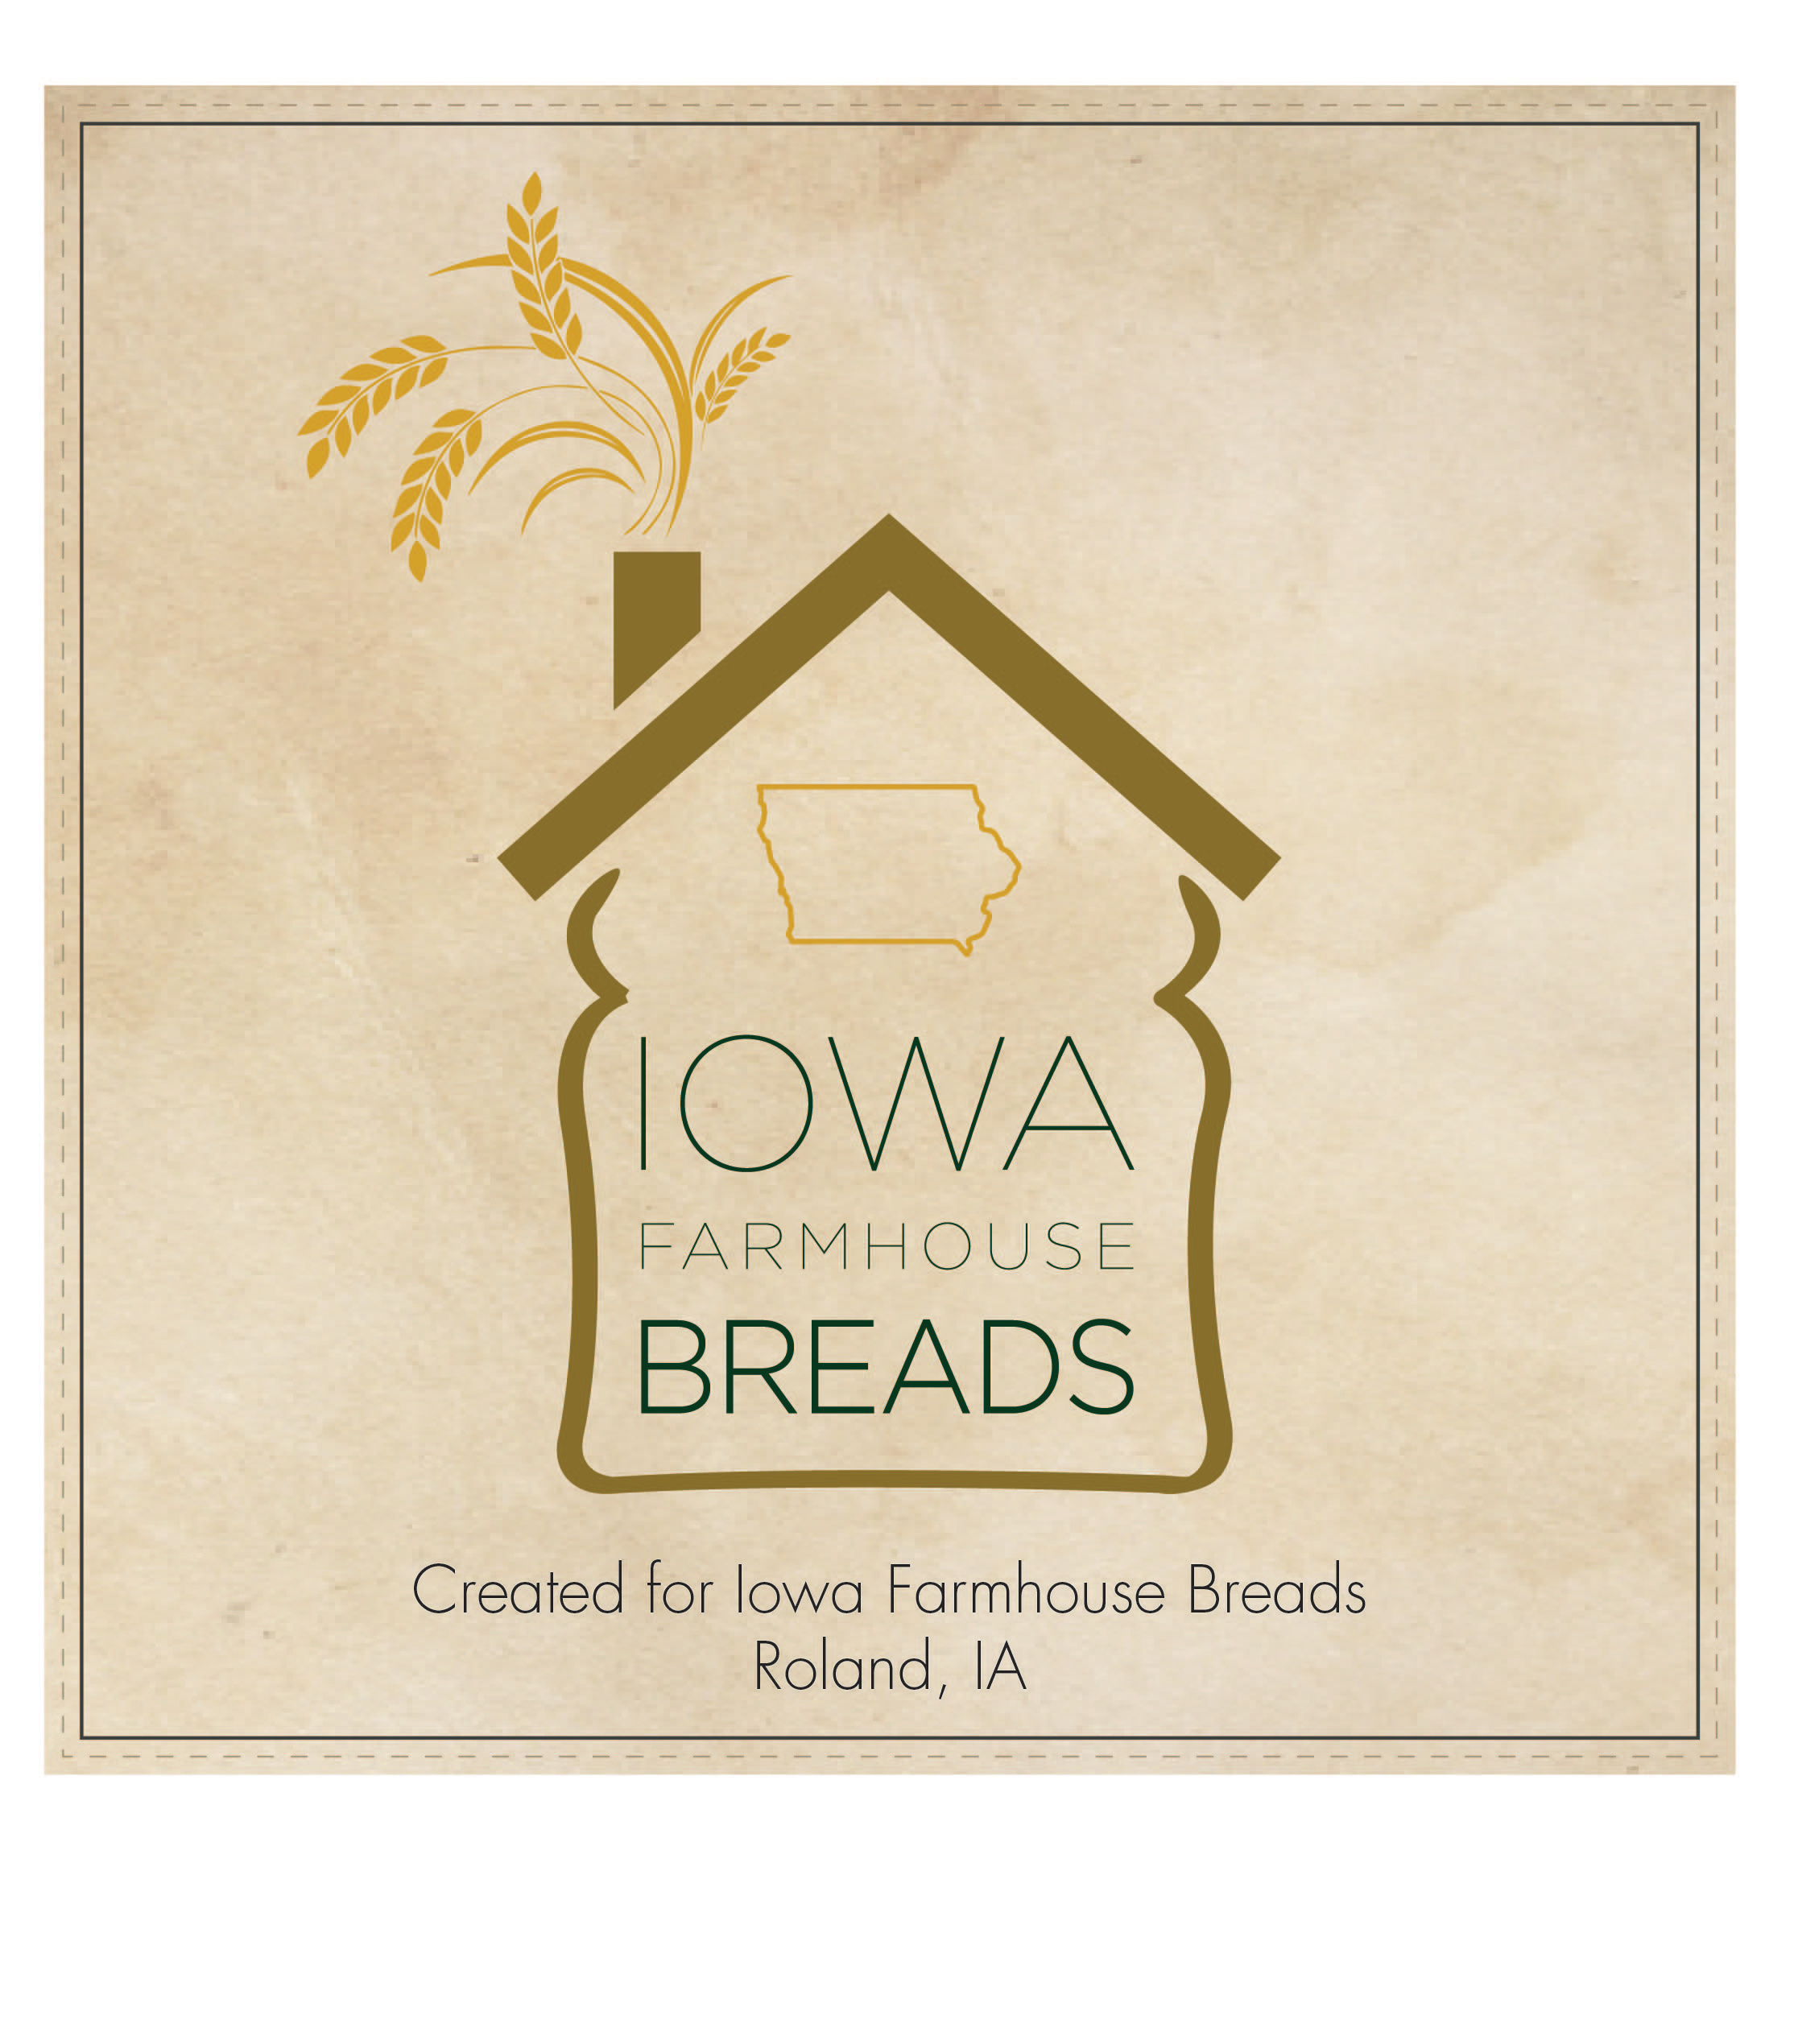 Iowa Farmhouse Breads